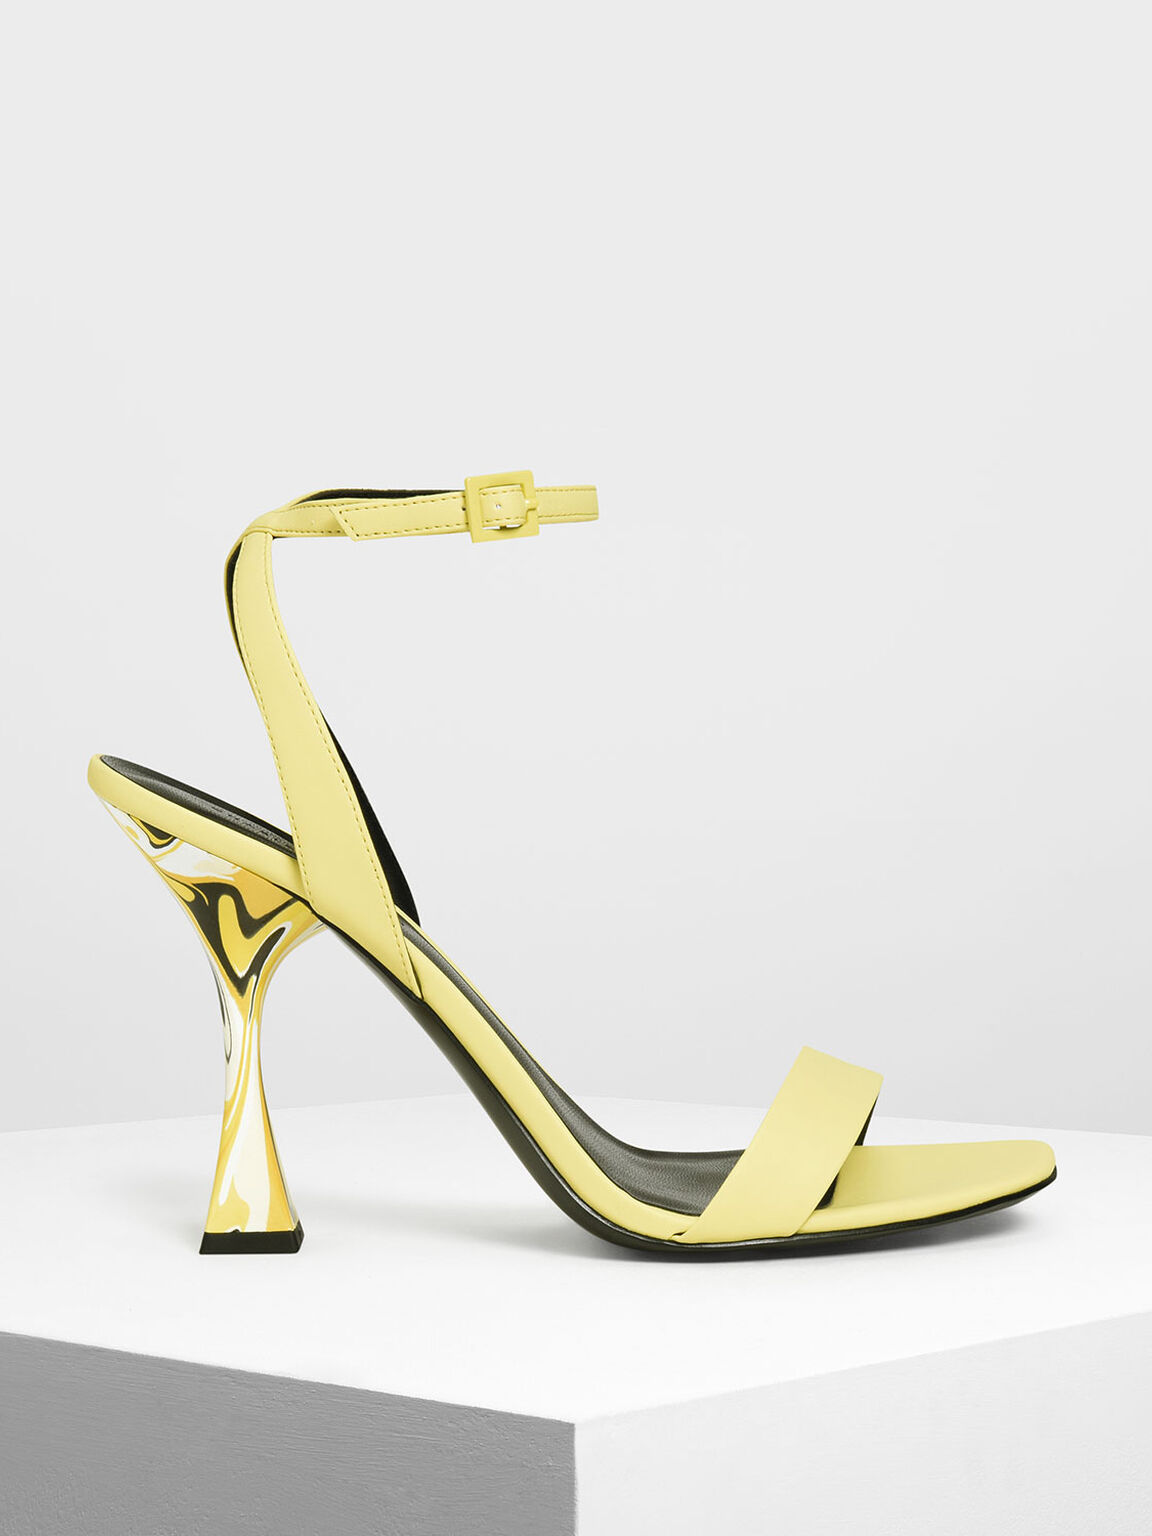 Sculptural Heels, Yellow, hi-res